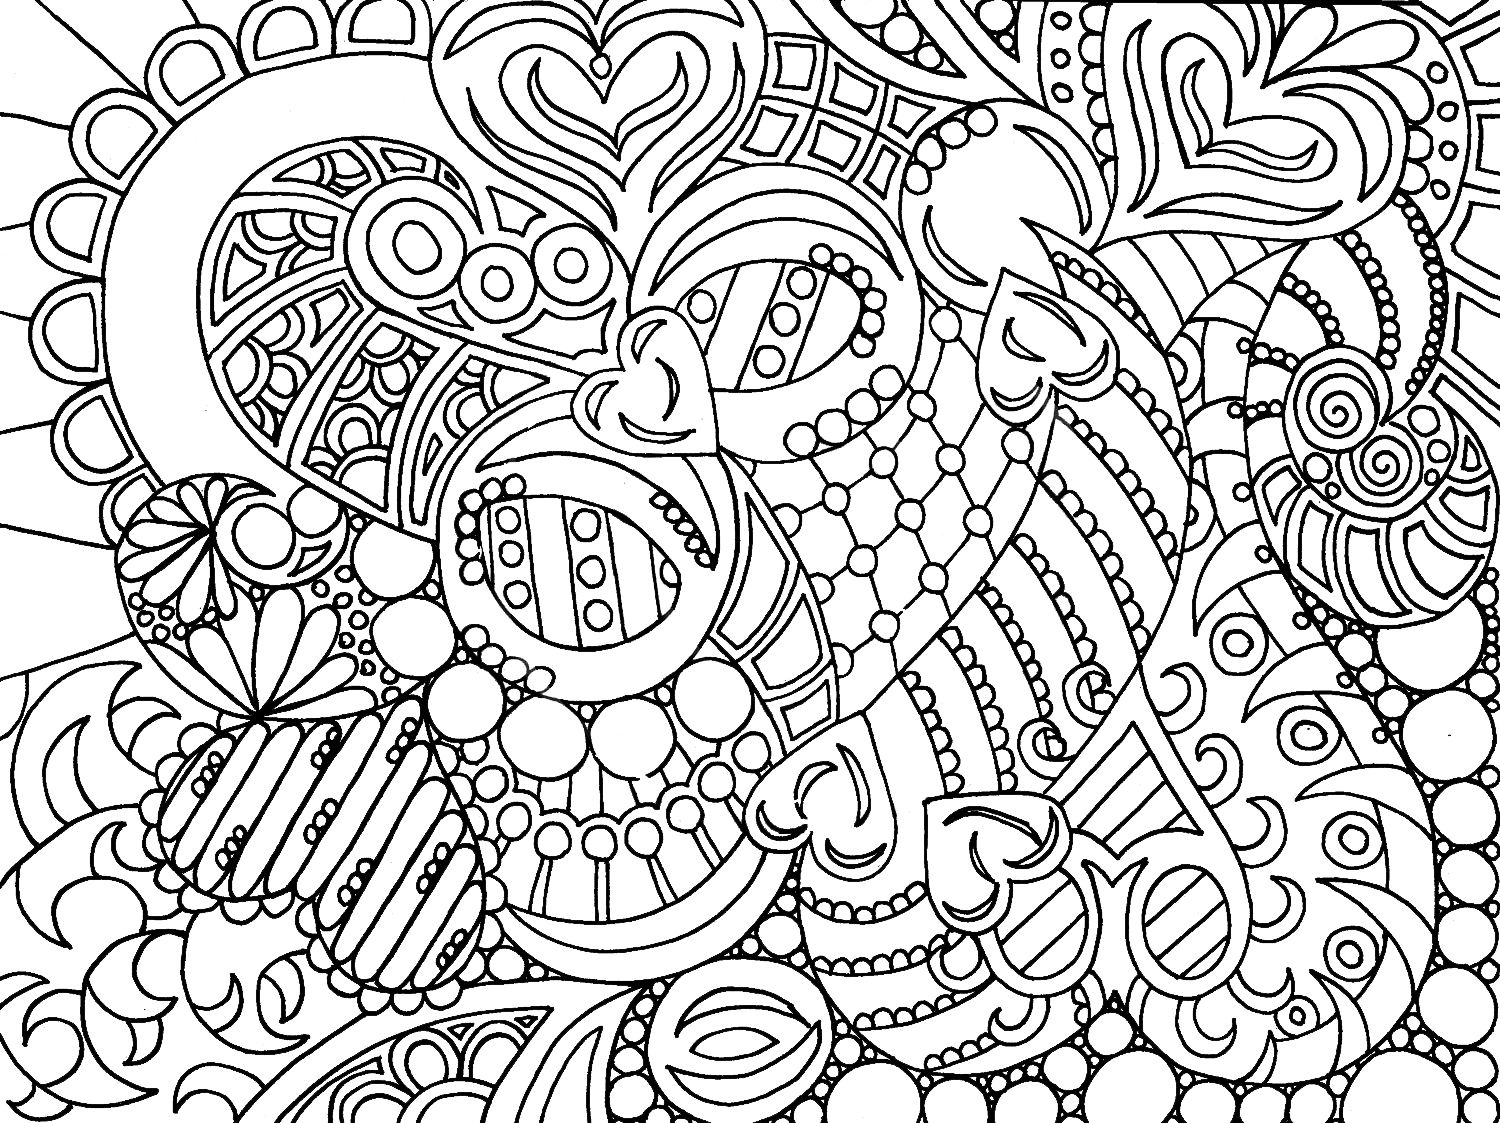 Uncategorized Coloring Pages To Color Online difficult coloring pages for adults online page calendario frozen 2015 com moldura adult owl onli